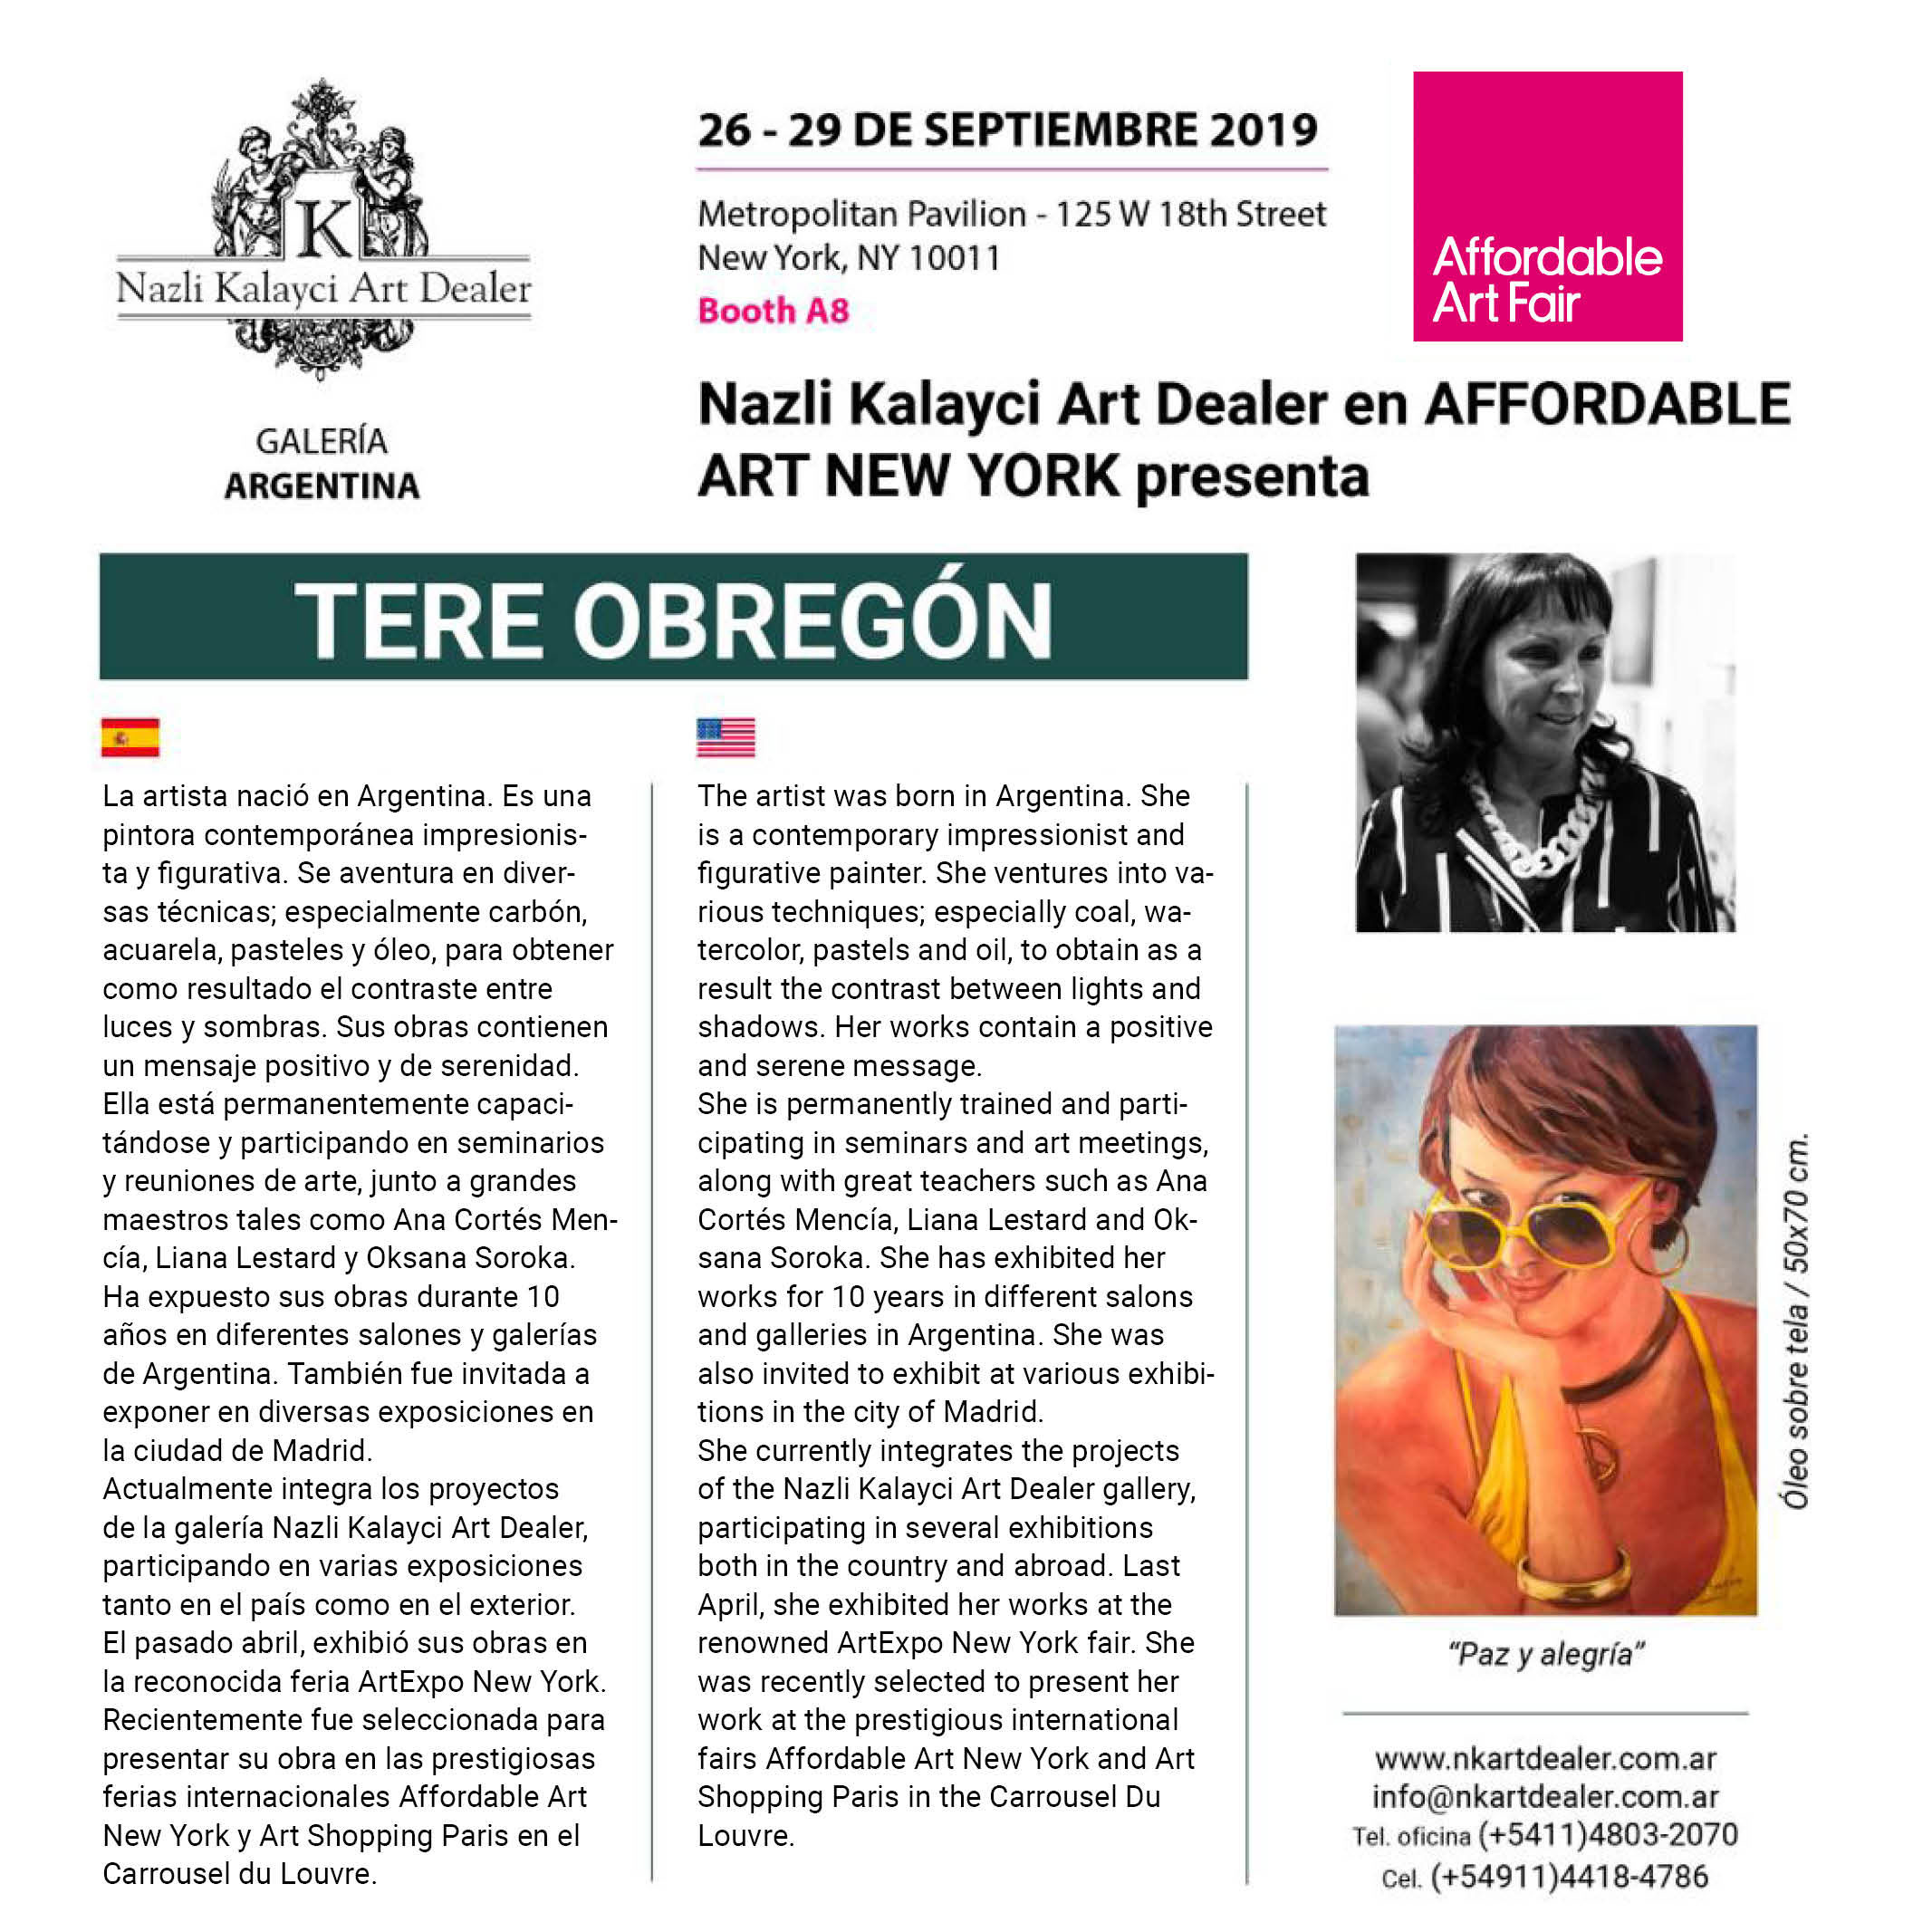 Tere Obregon - Affordable Art